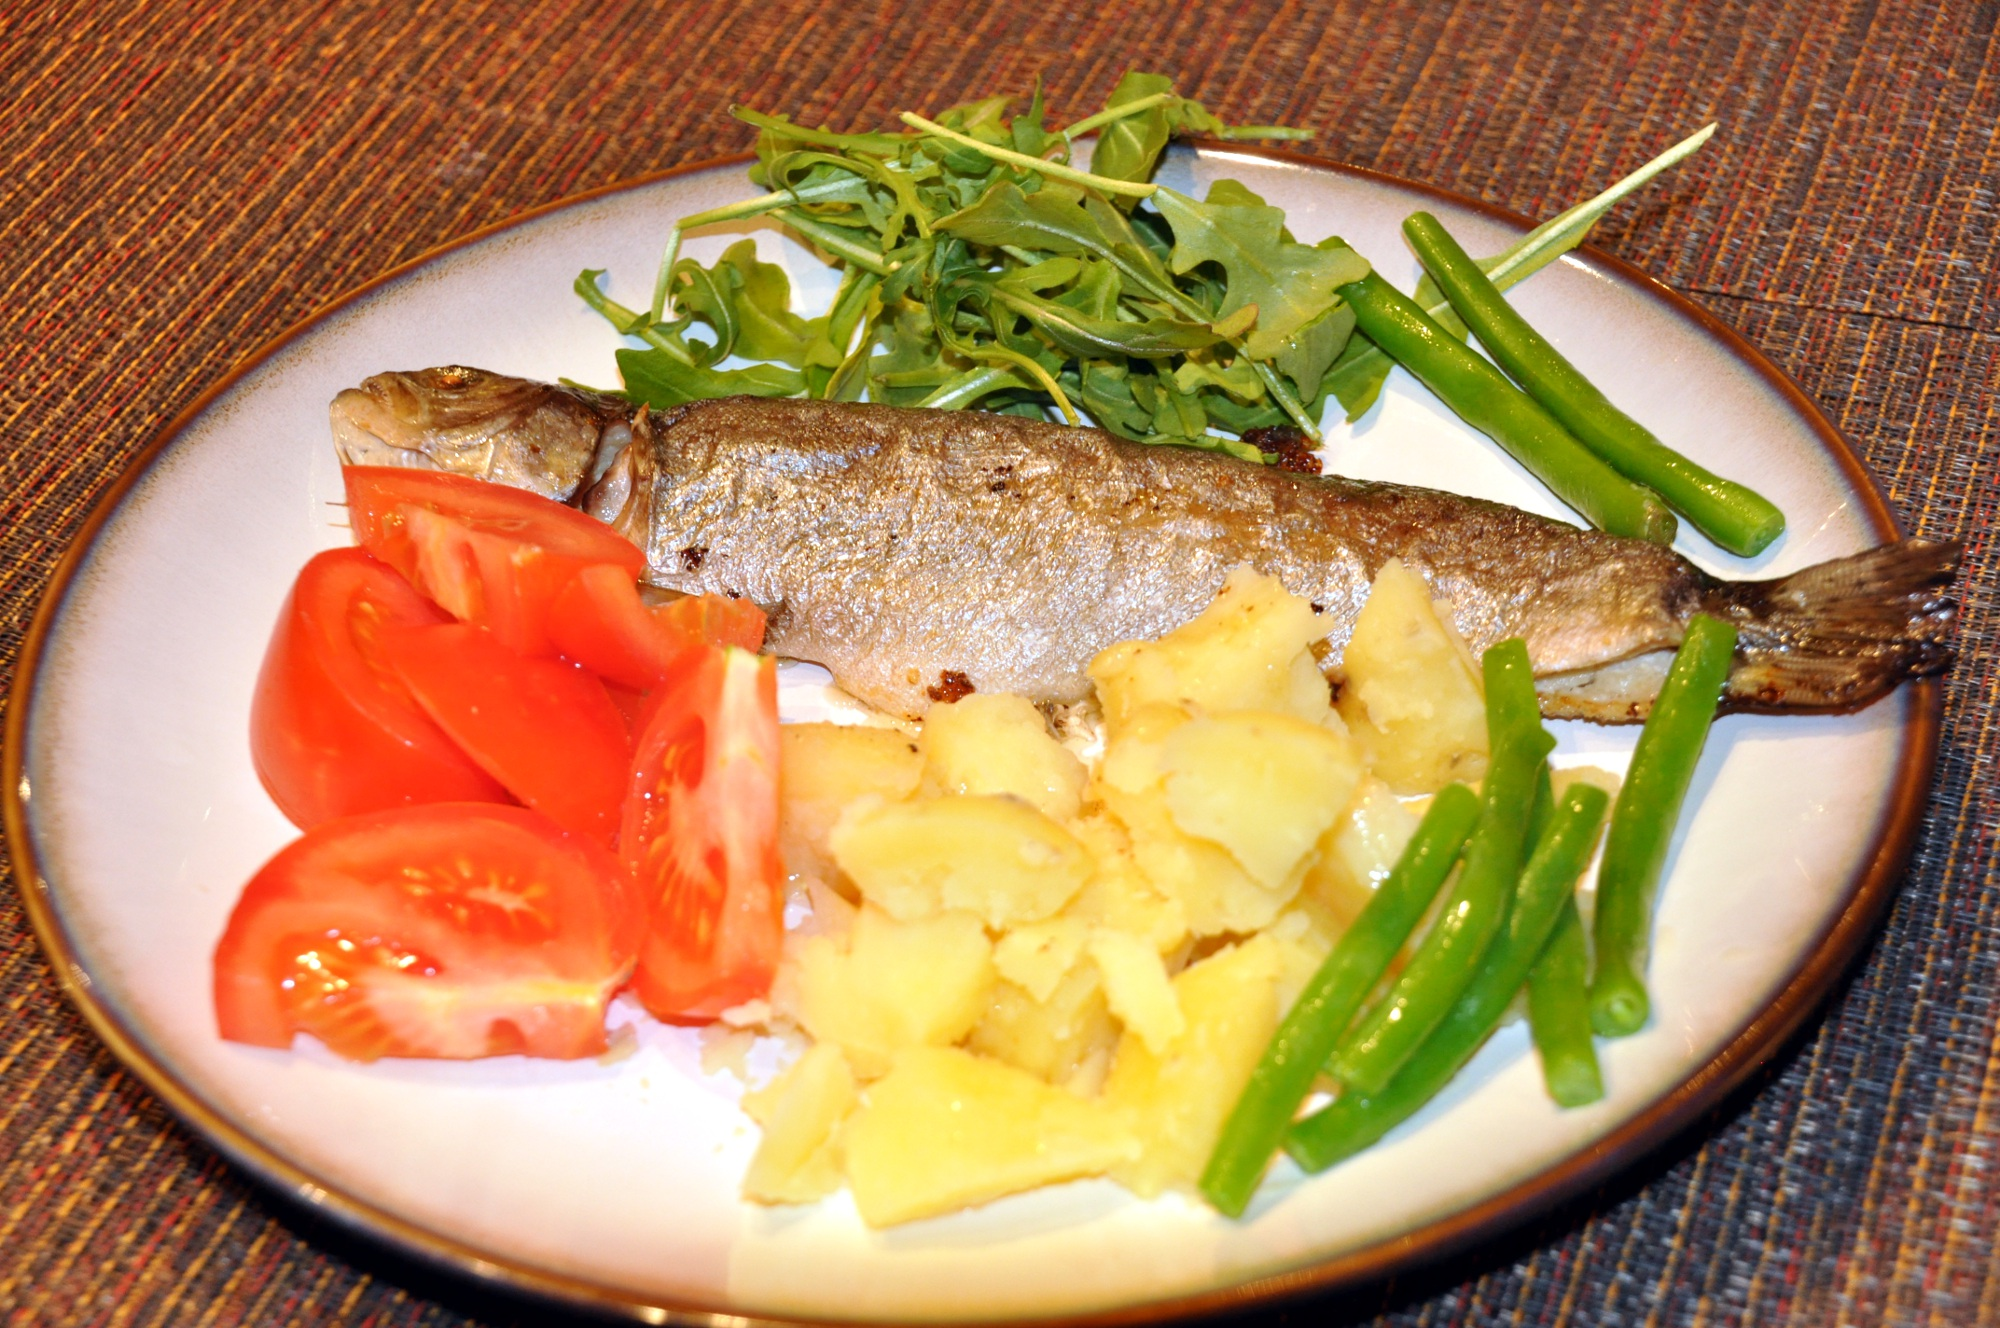 whole trout baked on butter with potatoes and vegetables